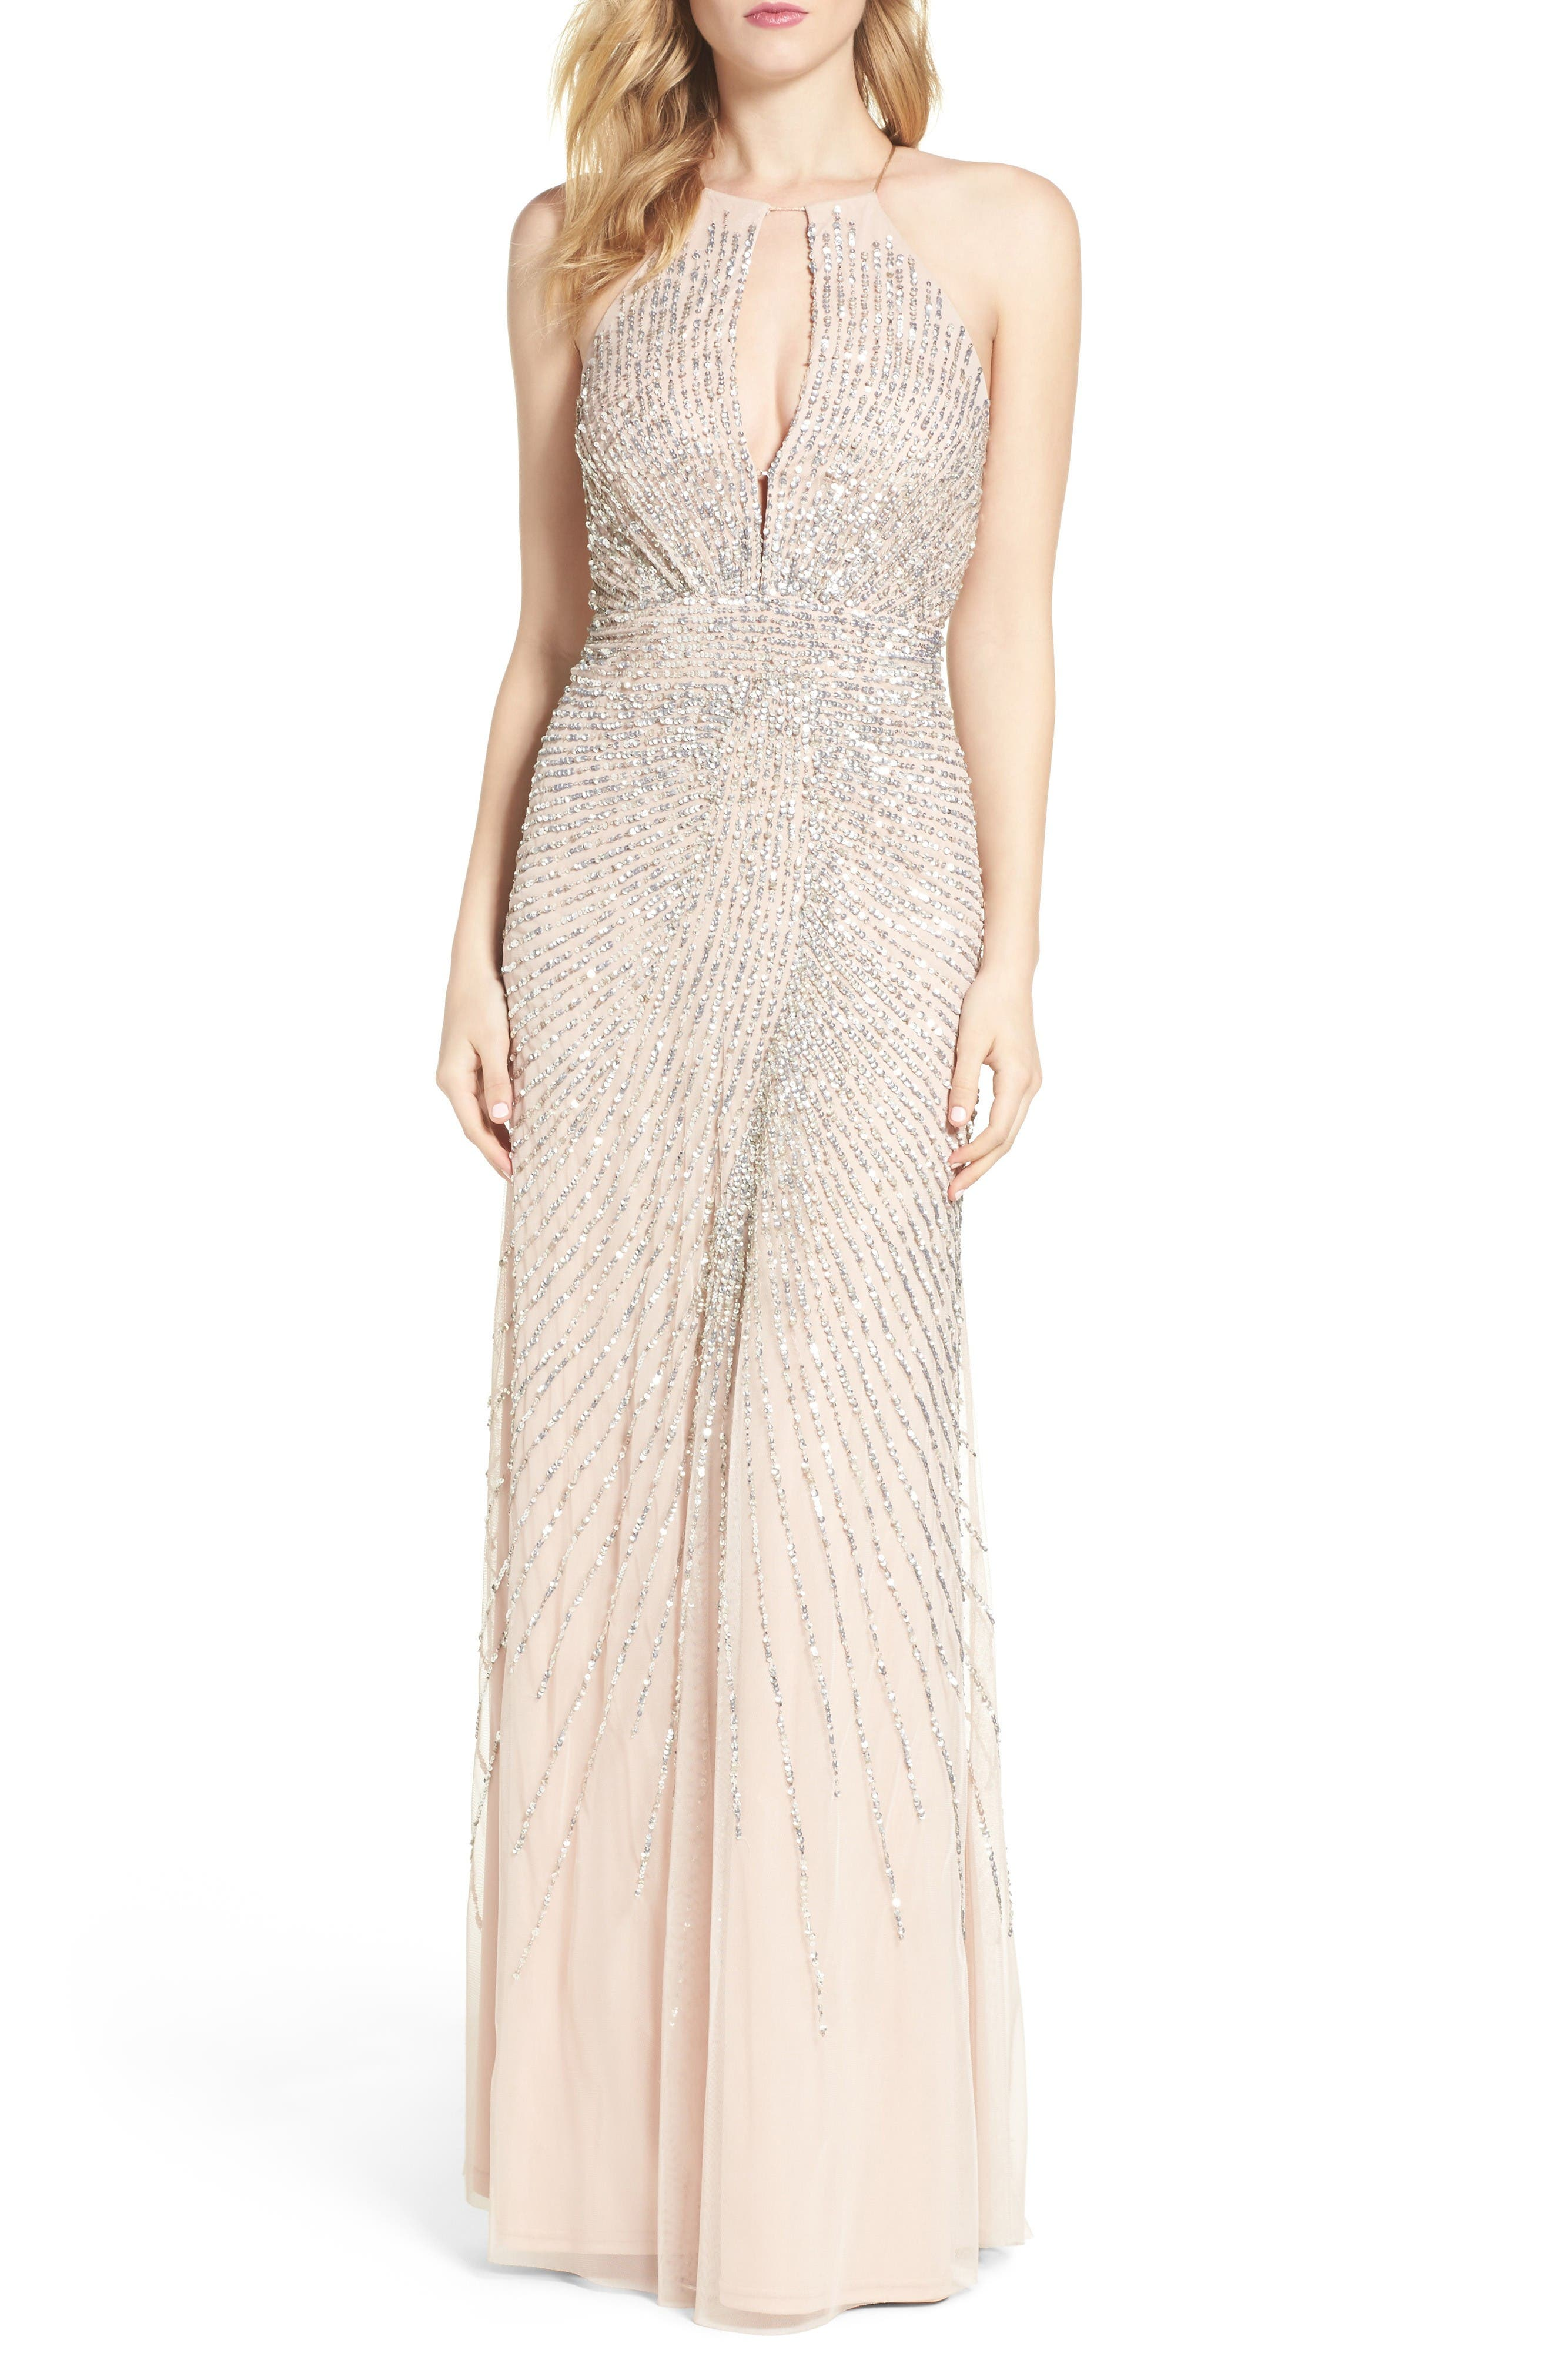 Main Image - Adrianna Papell Beaded Mesh Fit & Flare Gown